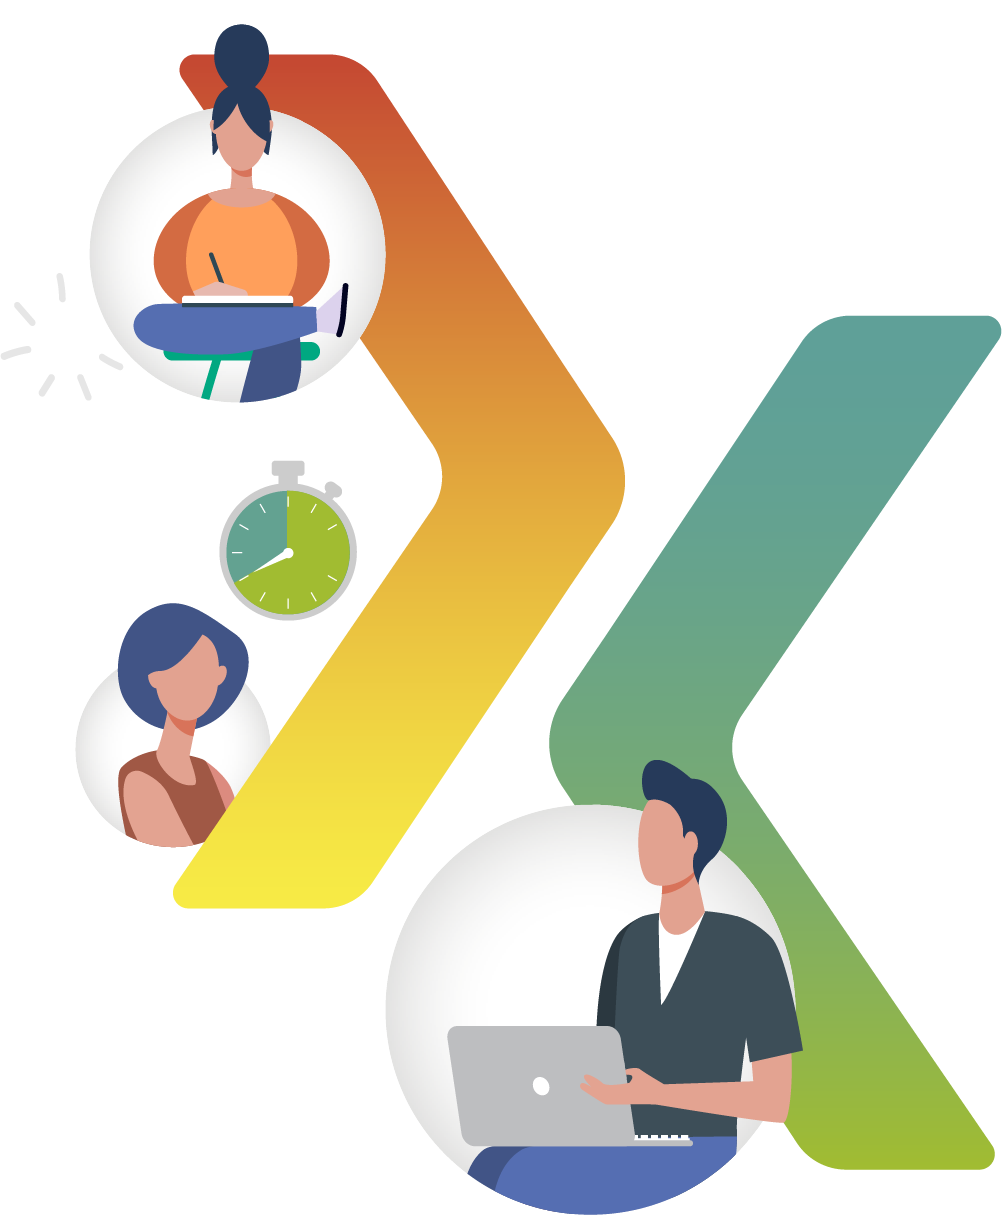 Flxion For All Meetings@2x